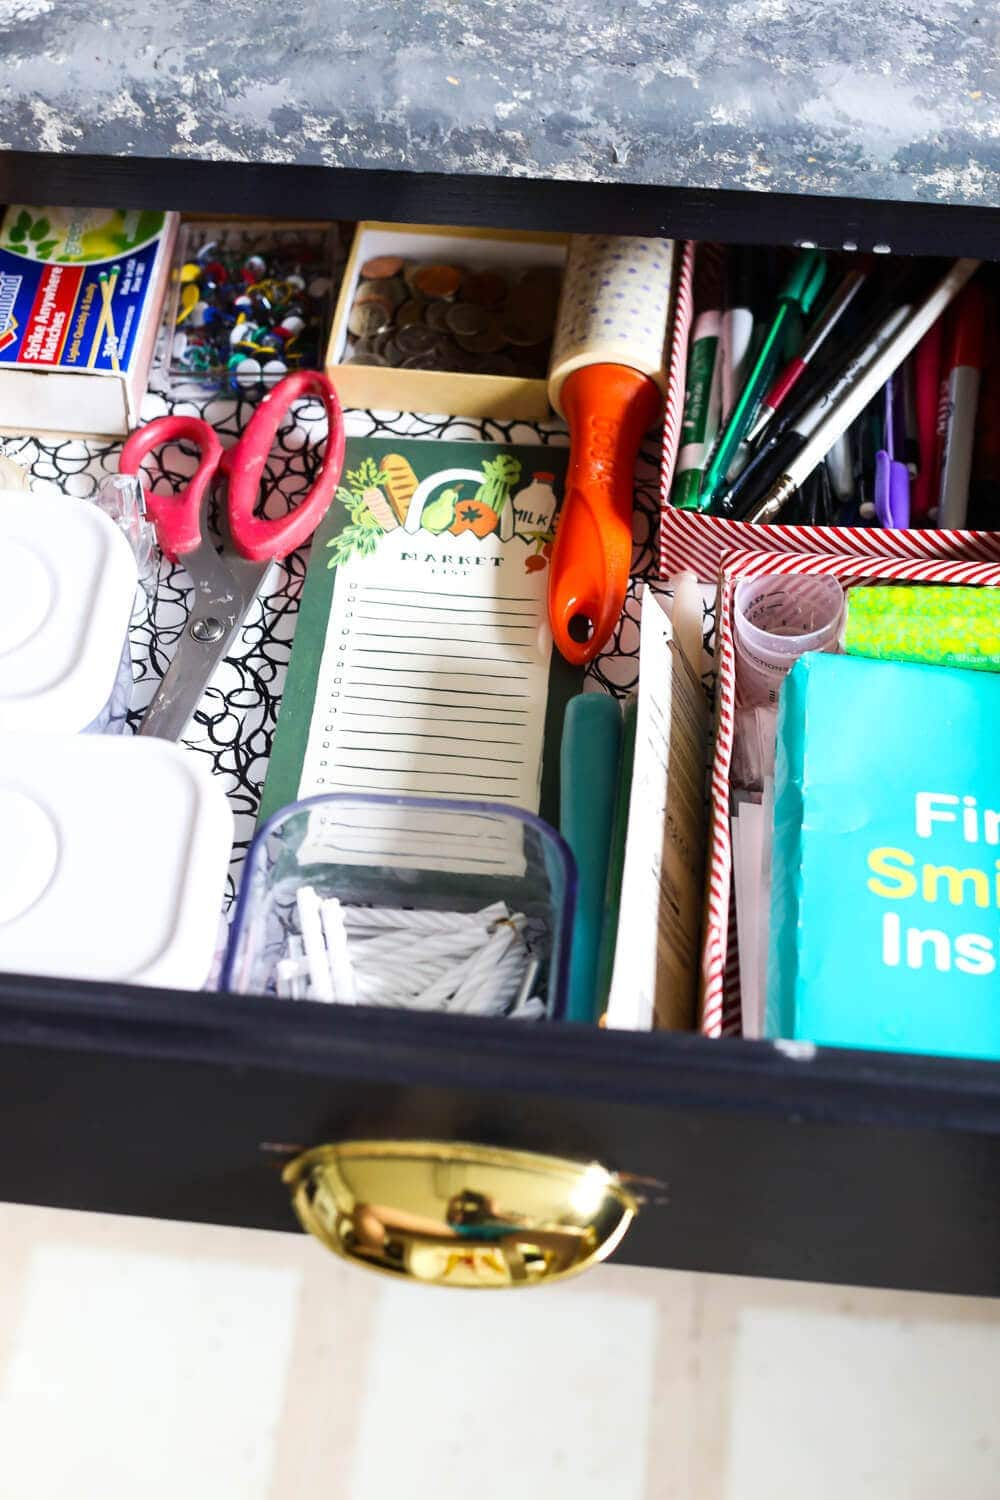 Tips on junk drawer organization - how to get your junk drawer completely organized without having to spend any money! Great, affordable solutions for a messy kitchen!